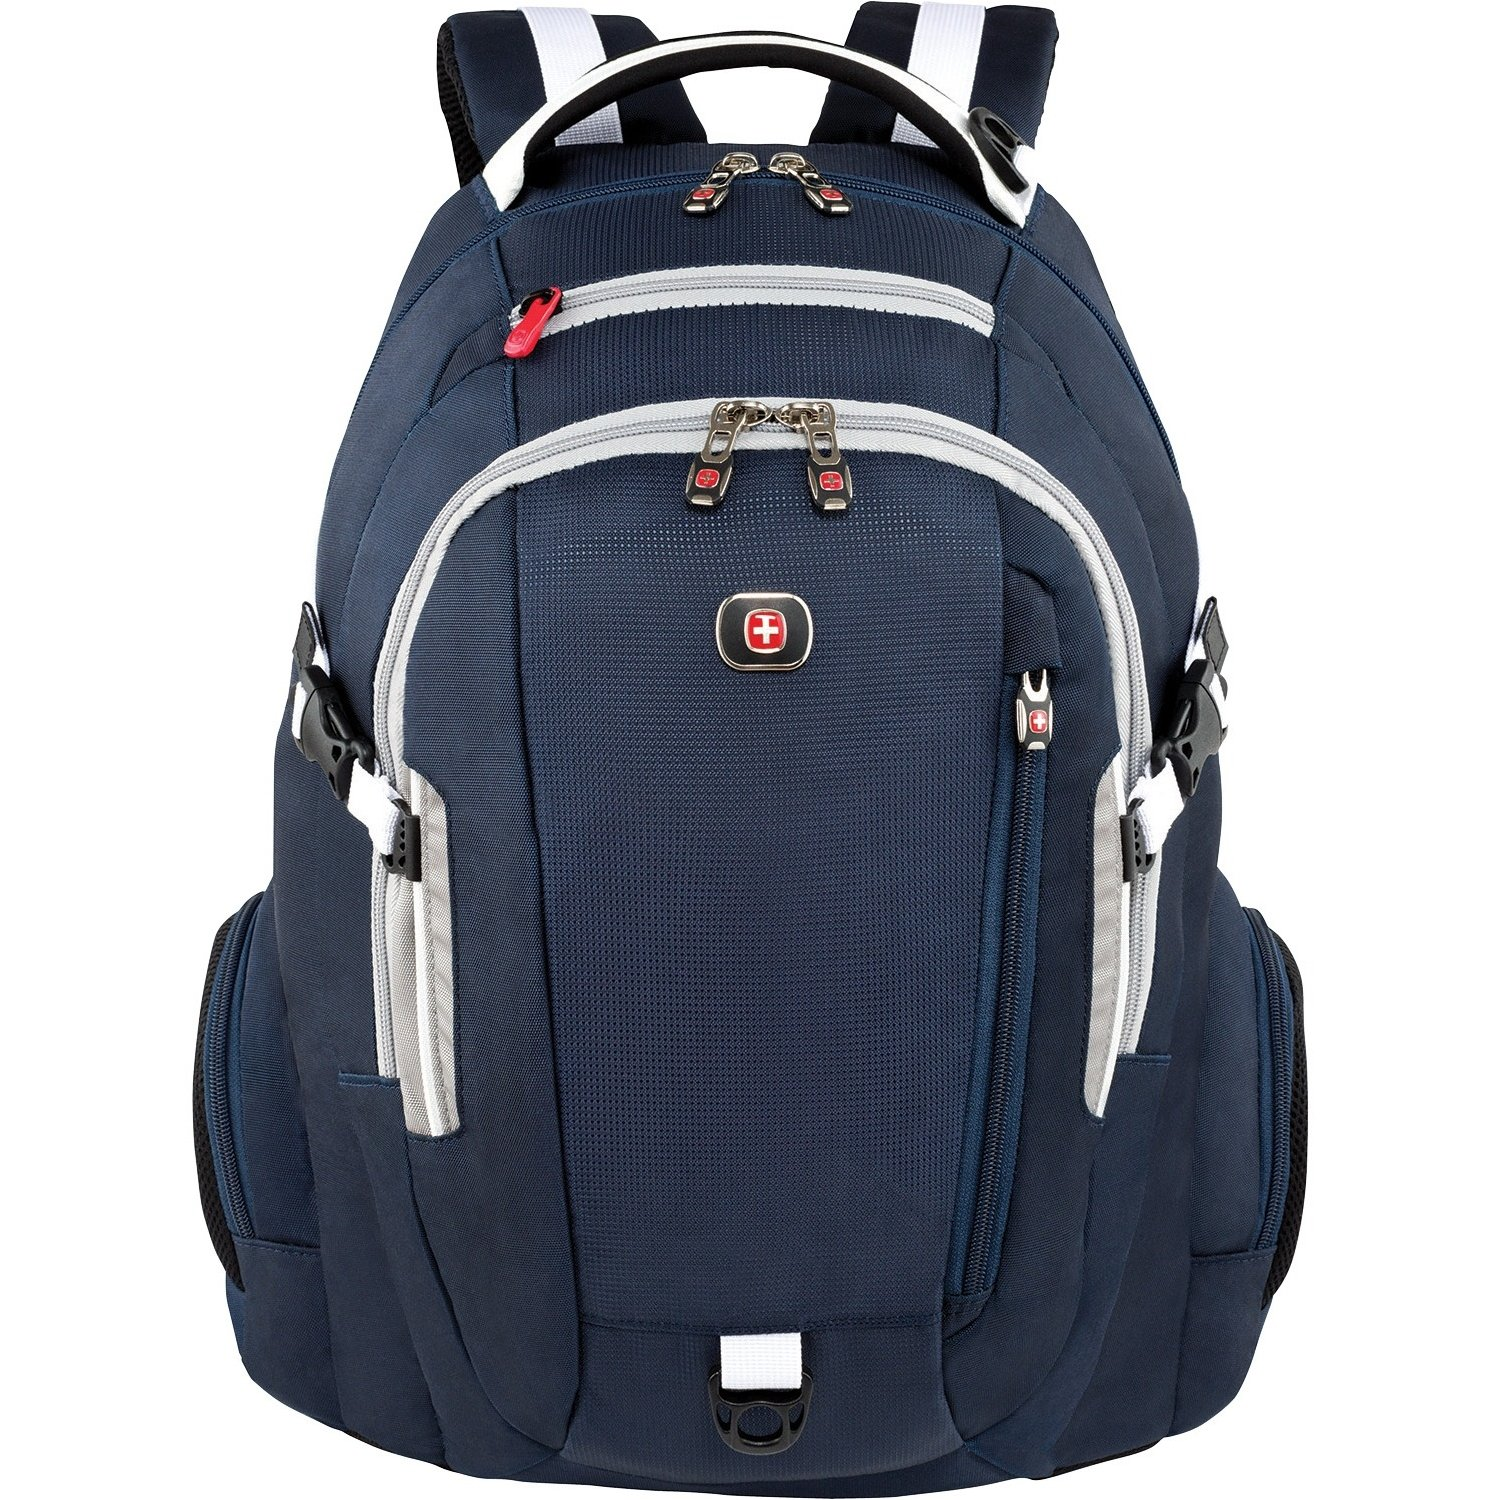 Amazon.com: Victorinox Swiss Army Inc. SwissGear Commute Backpack ...